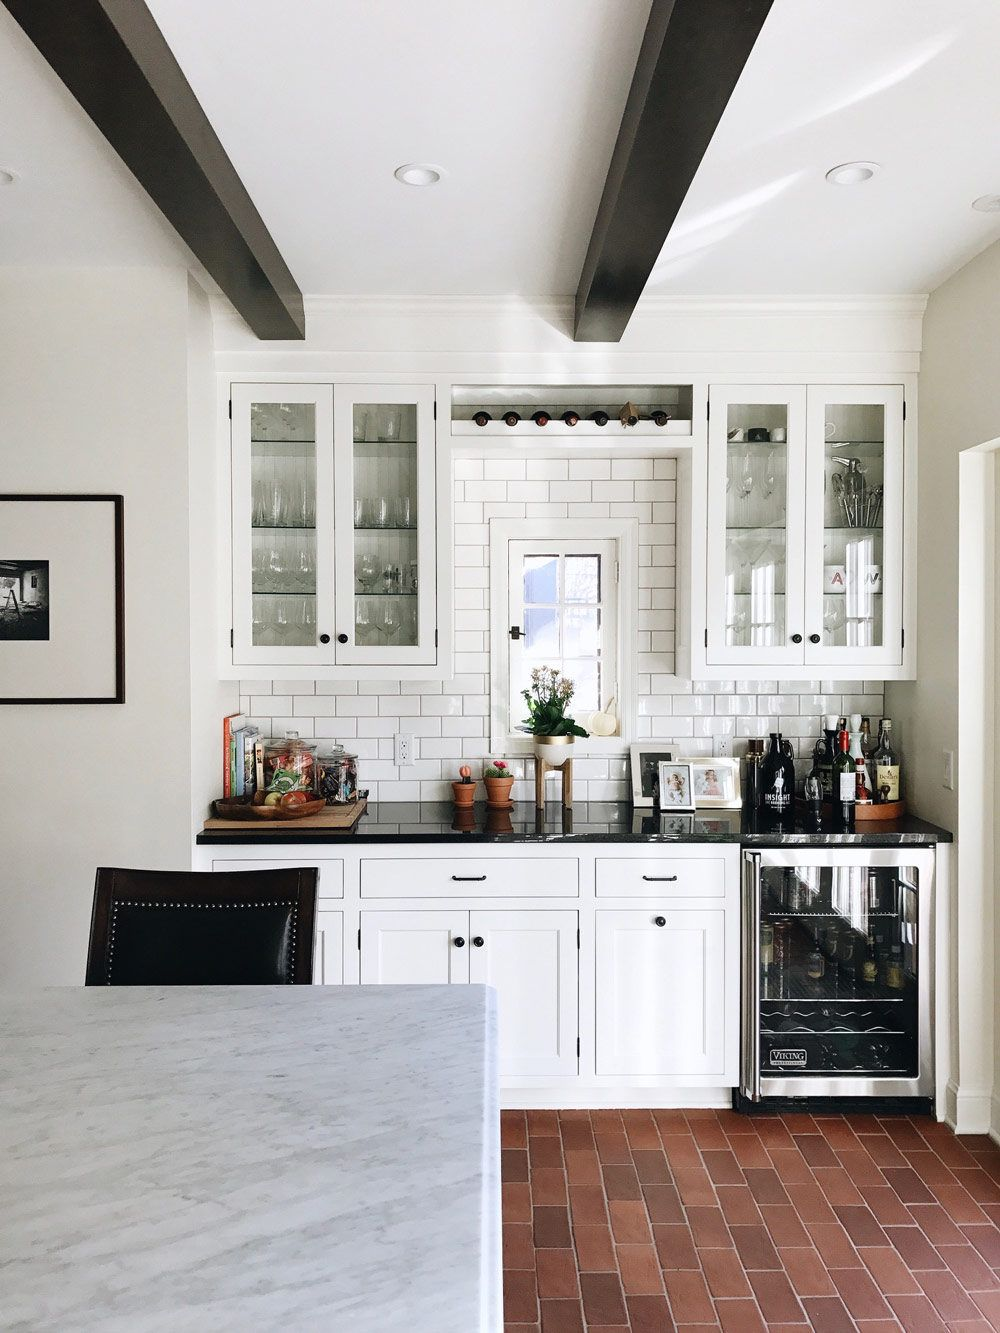 A 1920s Home Built with Charming Architectural Details | Detail ...